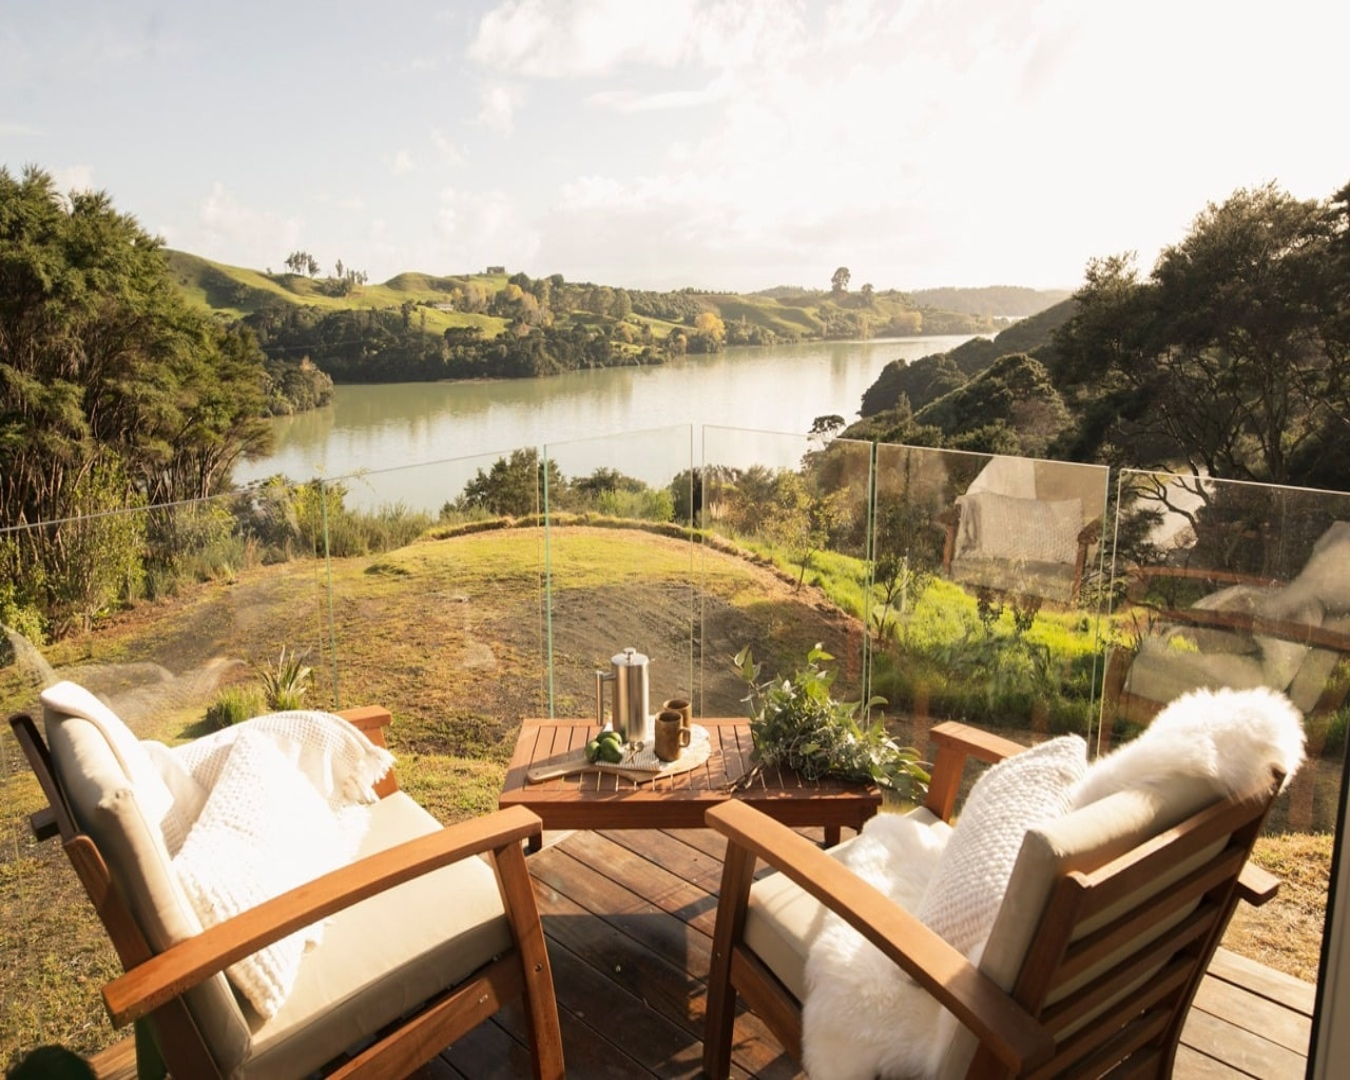 Two cosy chairs at Tarata eco retreat and a coffee pot on a deck overlooking a peaceful-looking harbour.